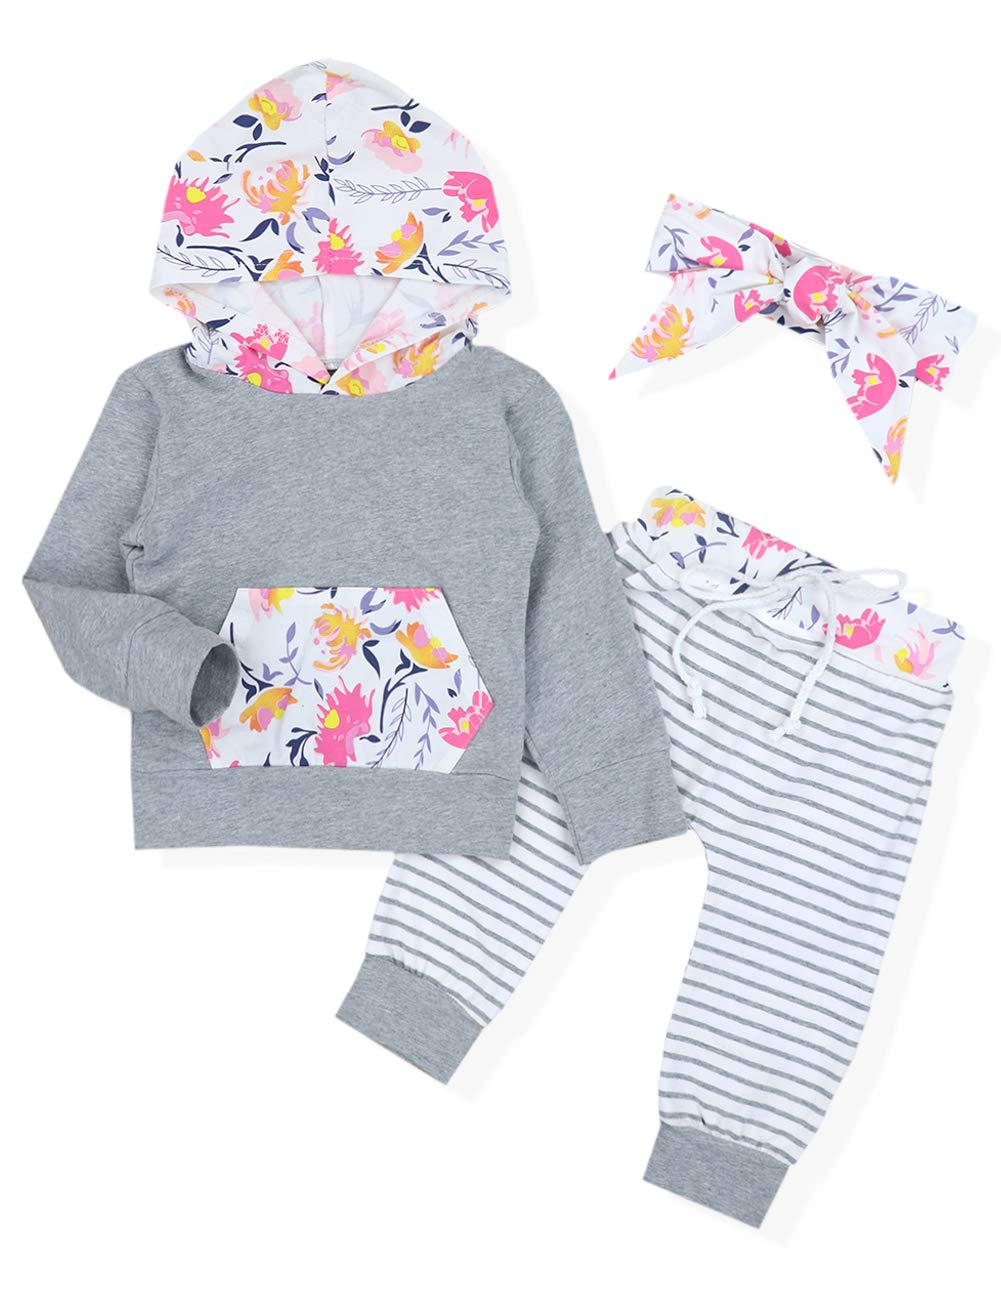 Baby Girls Clothes Floral Kangaroo Pocket Hoodie Top and Pant with Headband Winter Fall Outfits Set